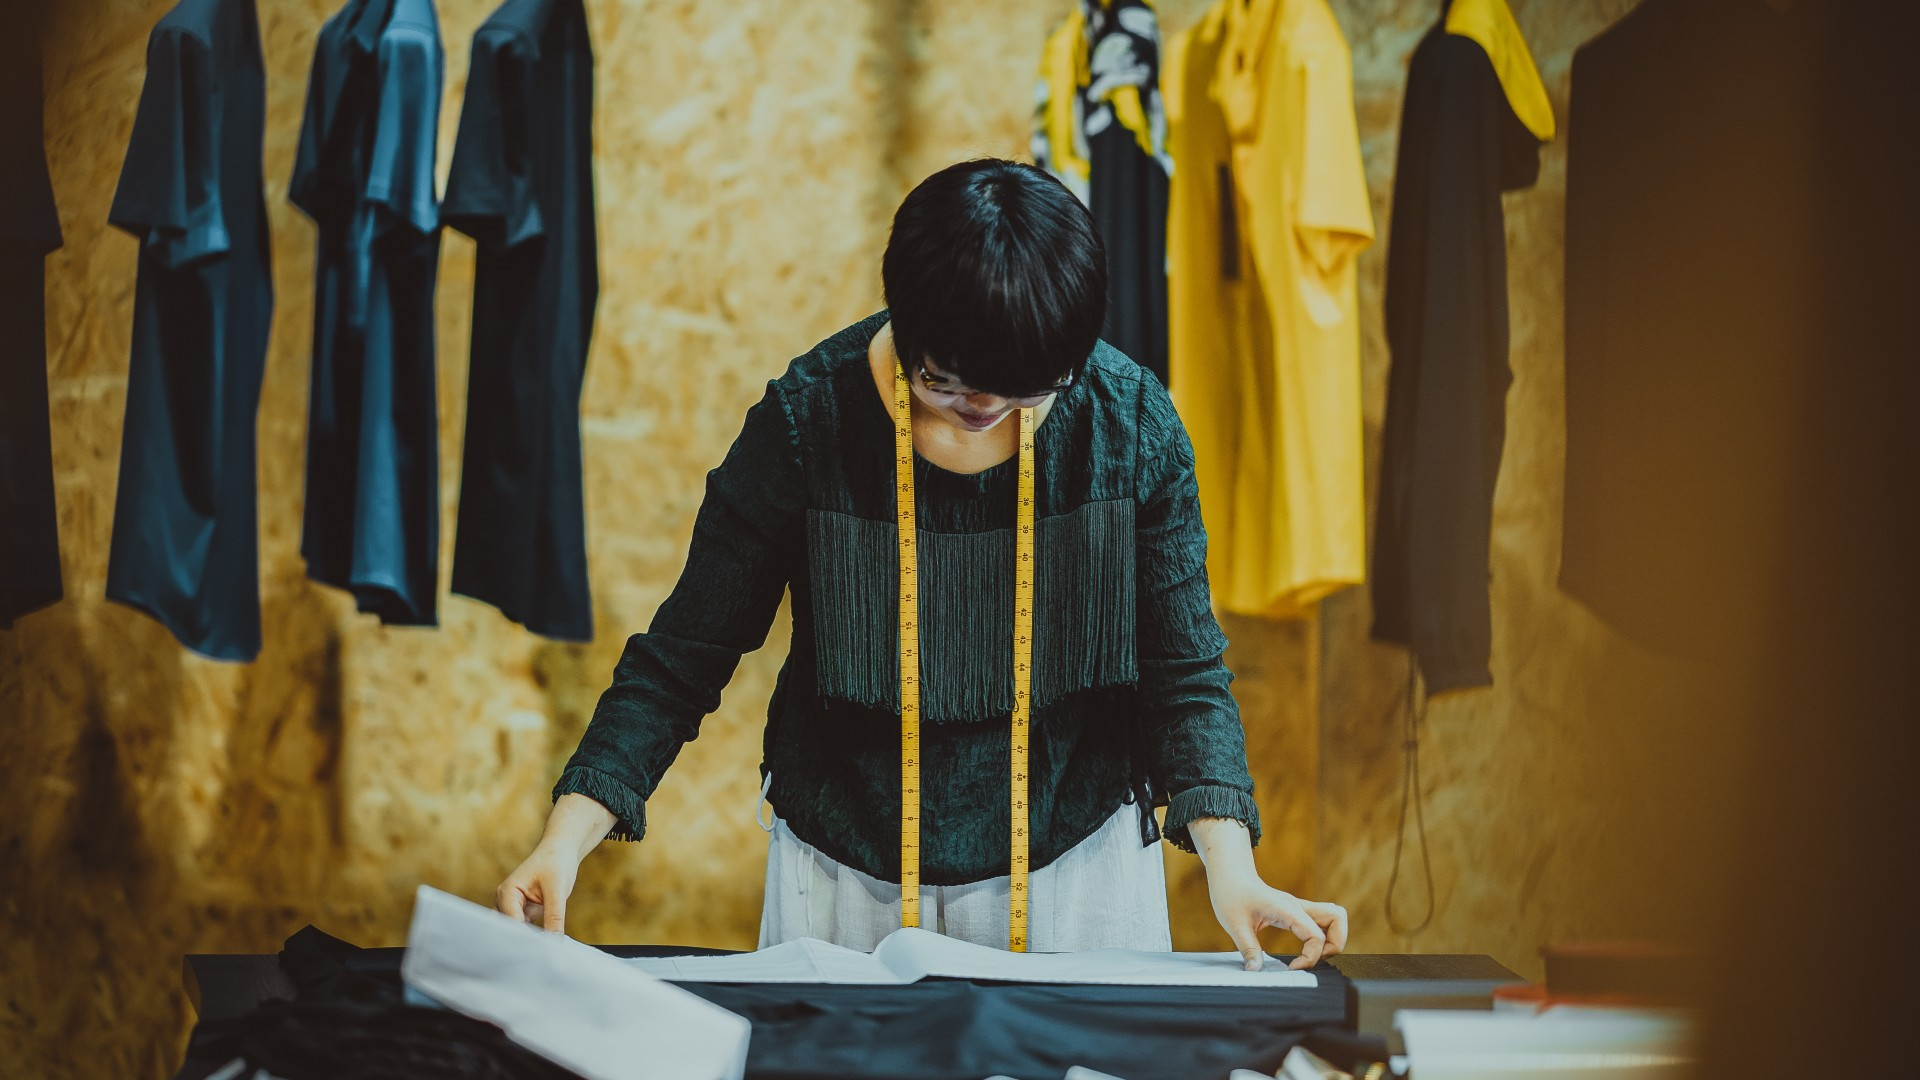 Seamstress working in a shop; Photo by Kenny Luo on Unsplash